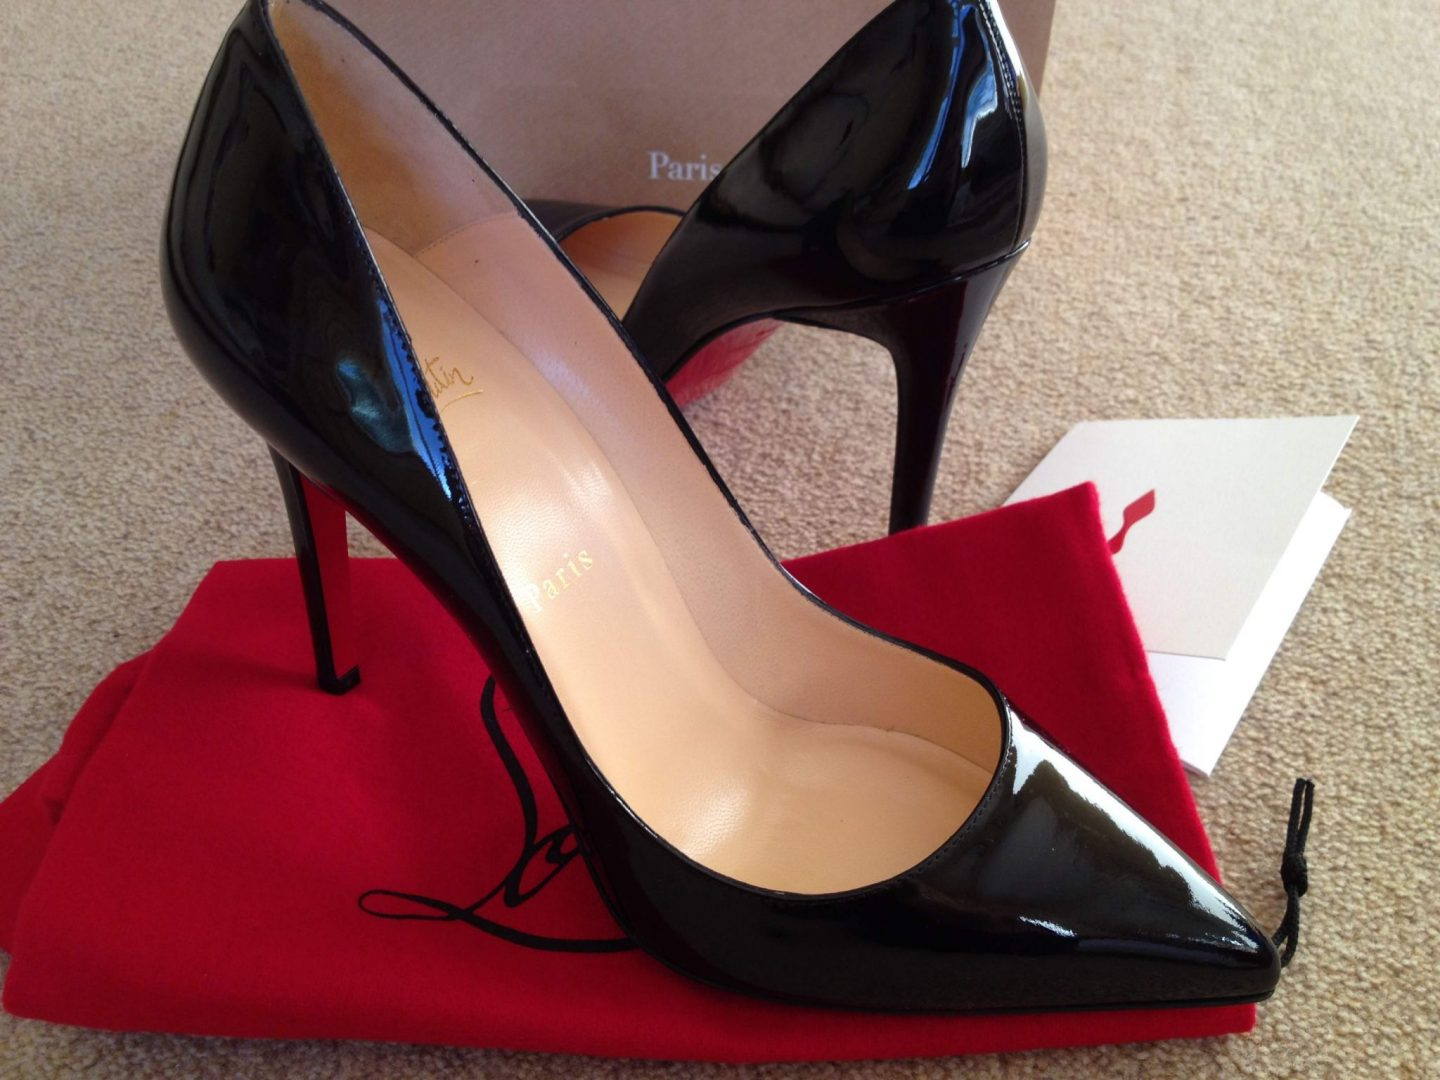 Buying Louboutins: Pigalle 100